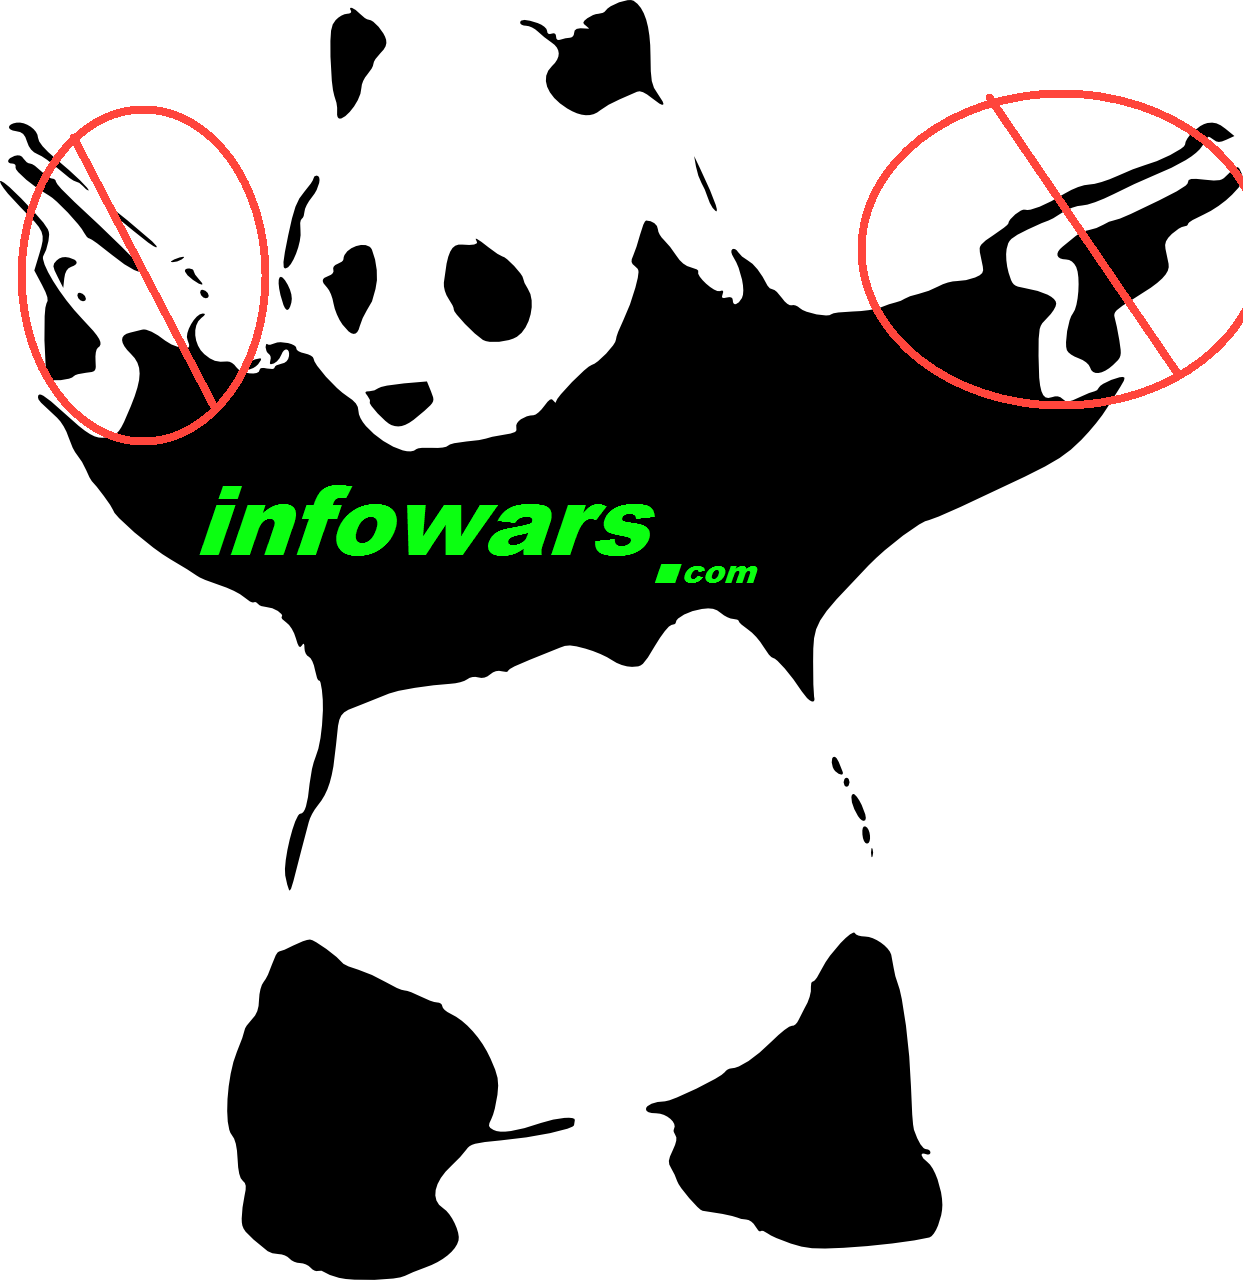 the truth panda knows the truth, and wants to share.